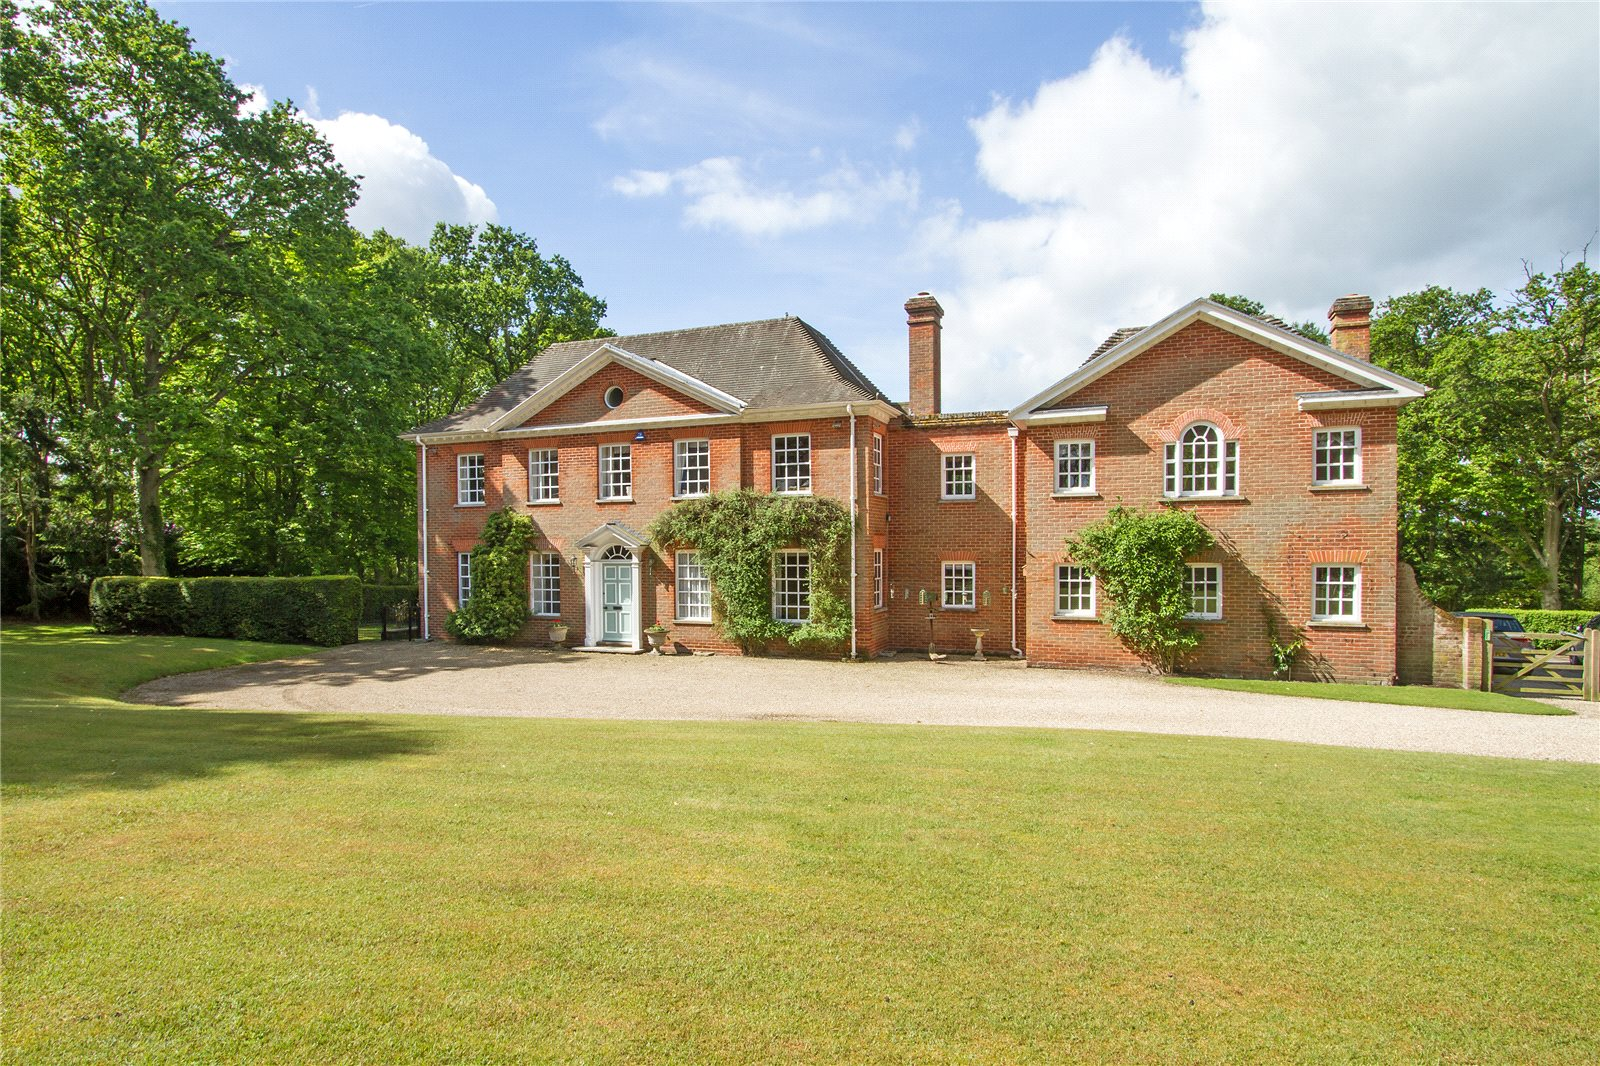 Maison unifamiliale pour l Vente à Kiln Lane, Farley Hill, Reading, Berkshire, RG7 Reading, Angleterre